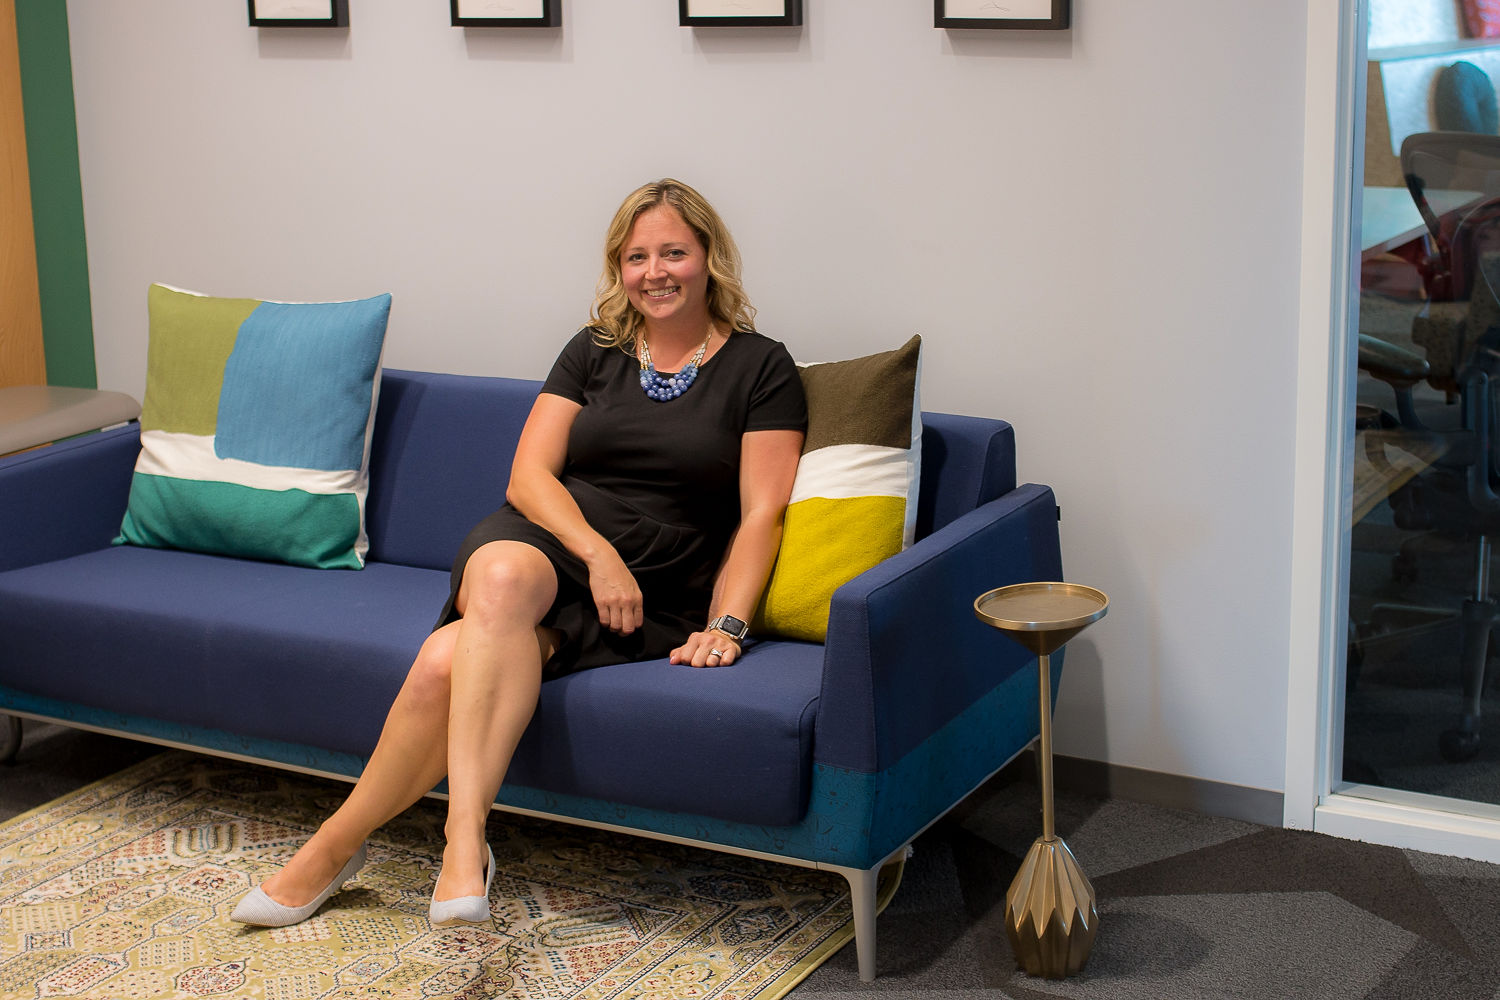 """A lot of internal marketing teams and agencies alike are just checking boxes. There is no data or business goal attached with their efforts. That's what really makes Blue Chair Digital stand out amongst the crowd."" - -Kim Italiano, Chief Business Development Officer"